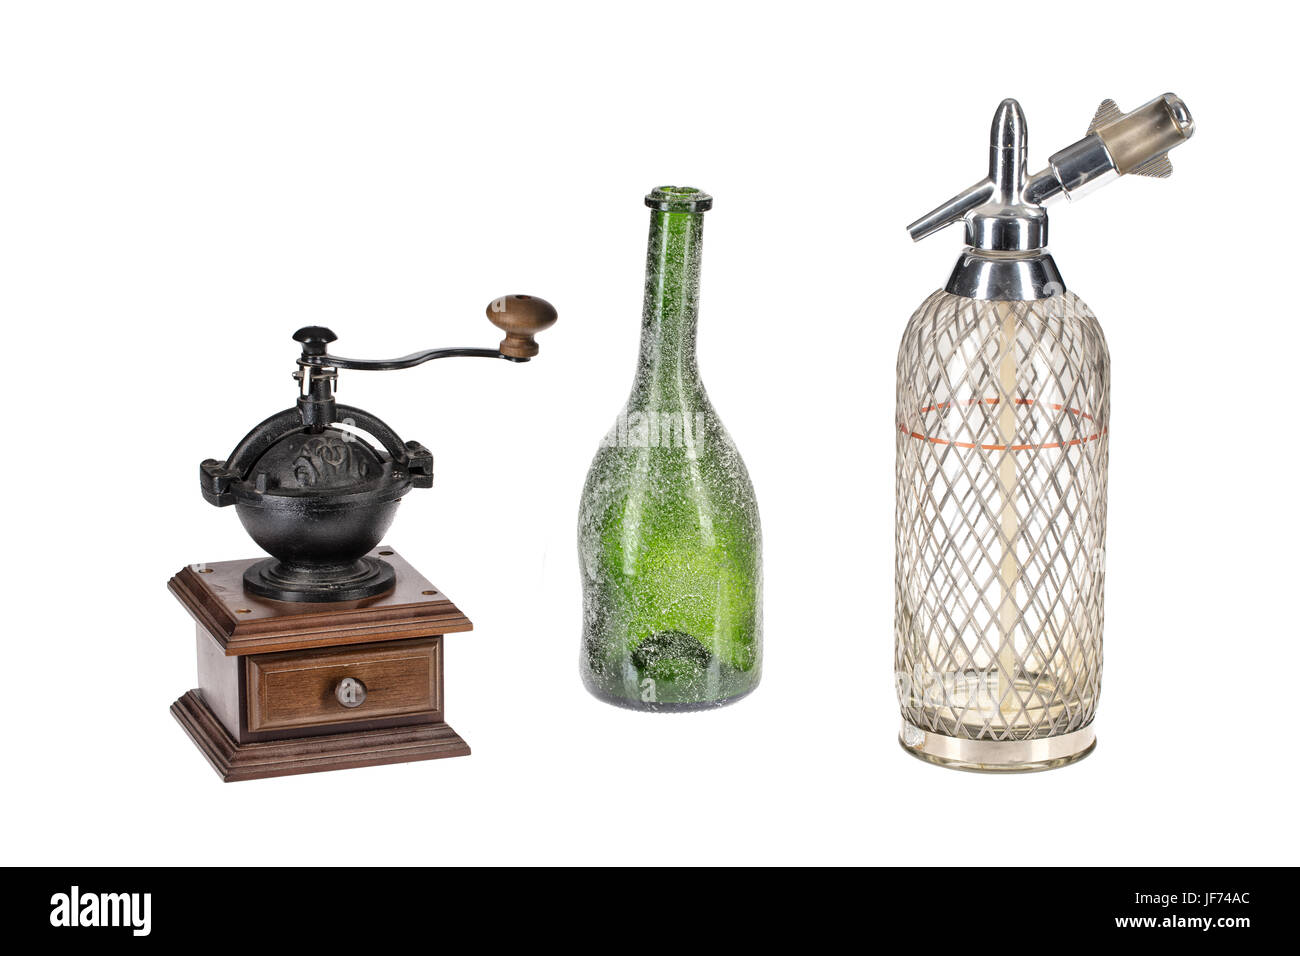 Coffee Mill, Green Bottle And Glass Siphon - Stock Image